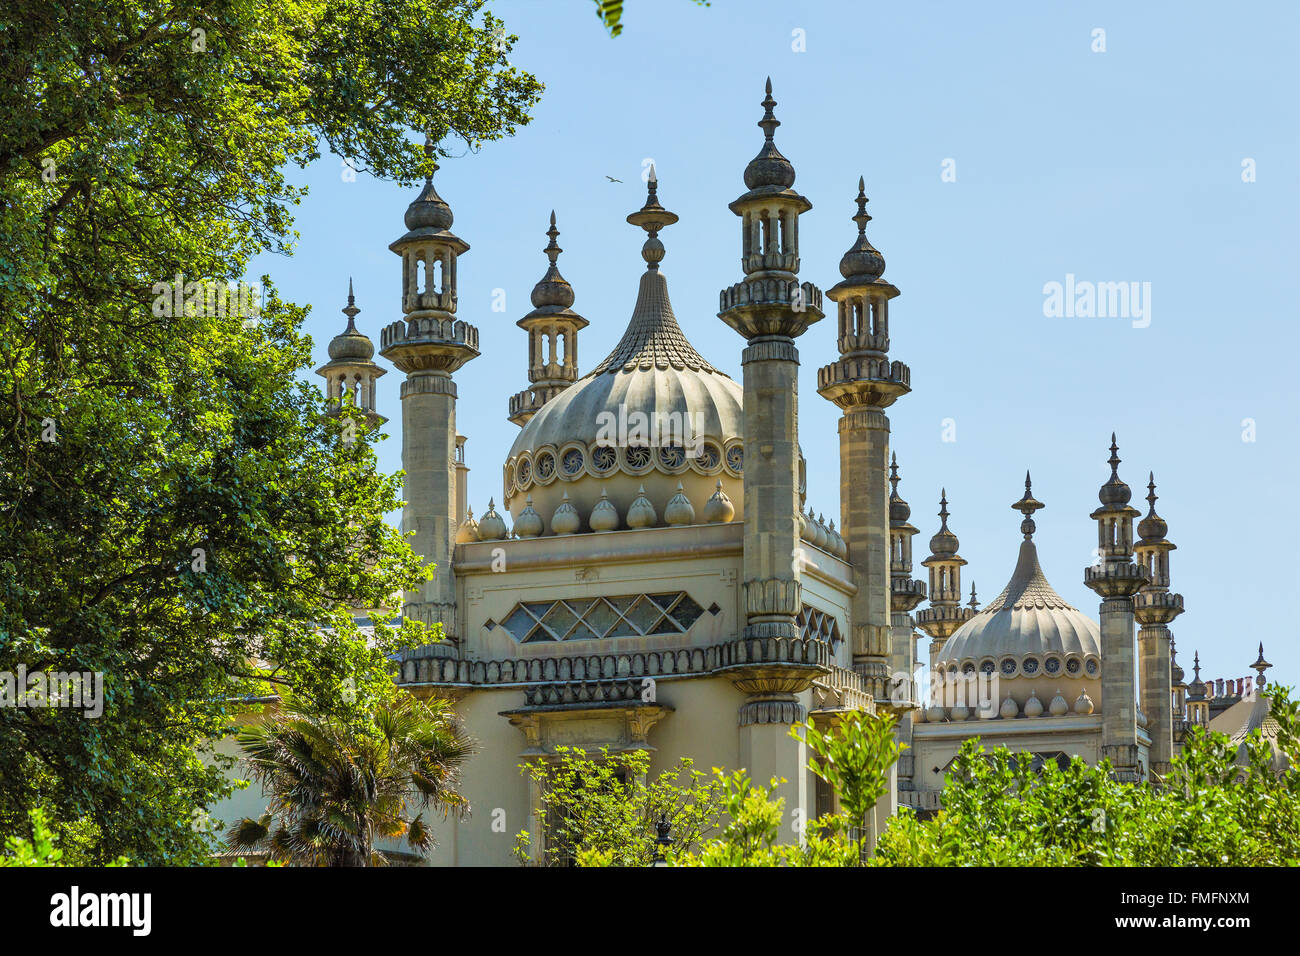 Brighton and Hove regency / Edwardian / Victorian architecture, illustrating it's past. Royal Pavilion UK Stock Photo